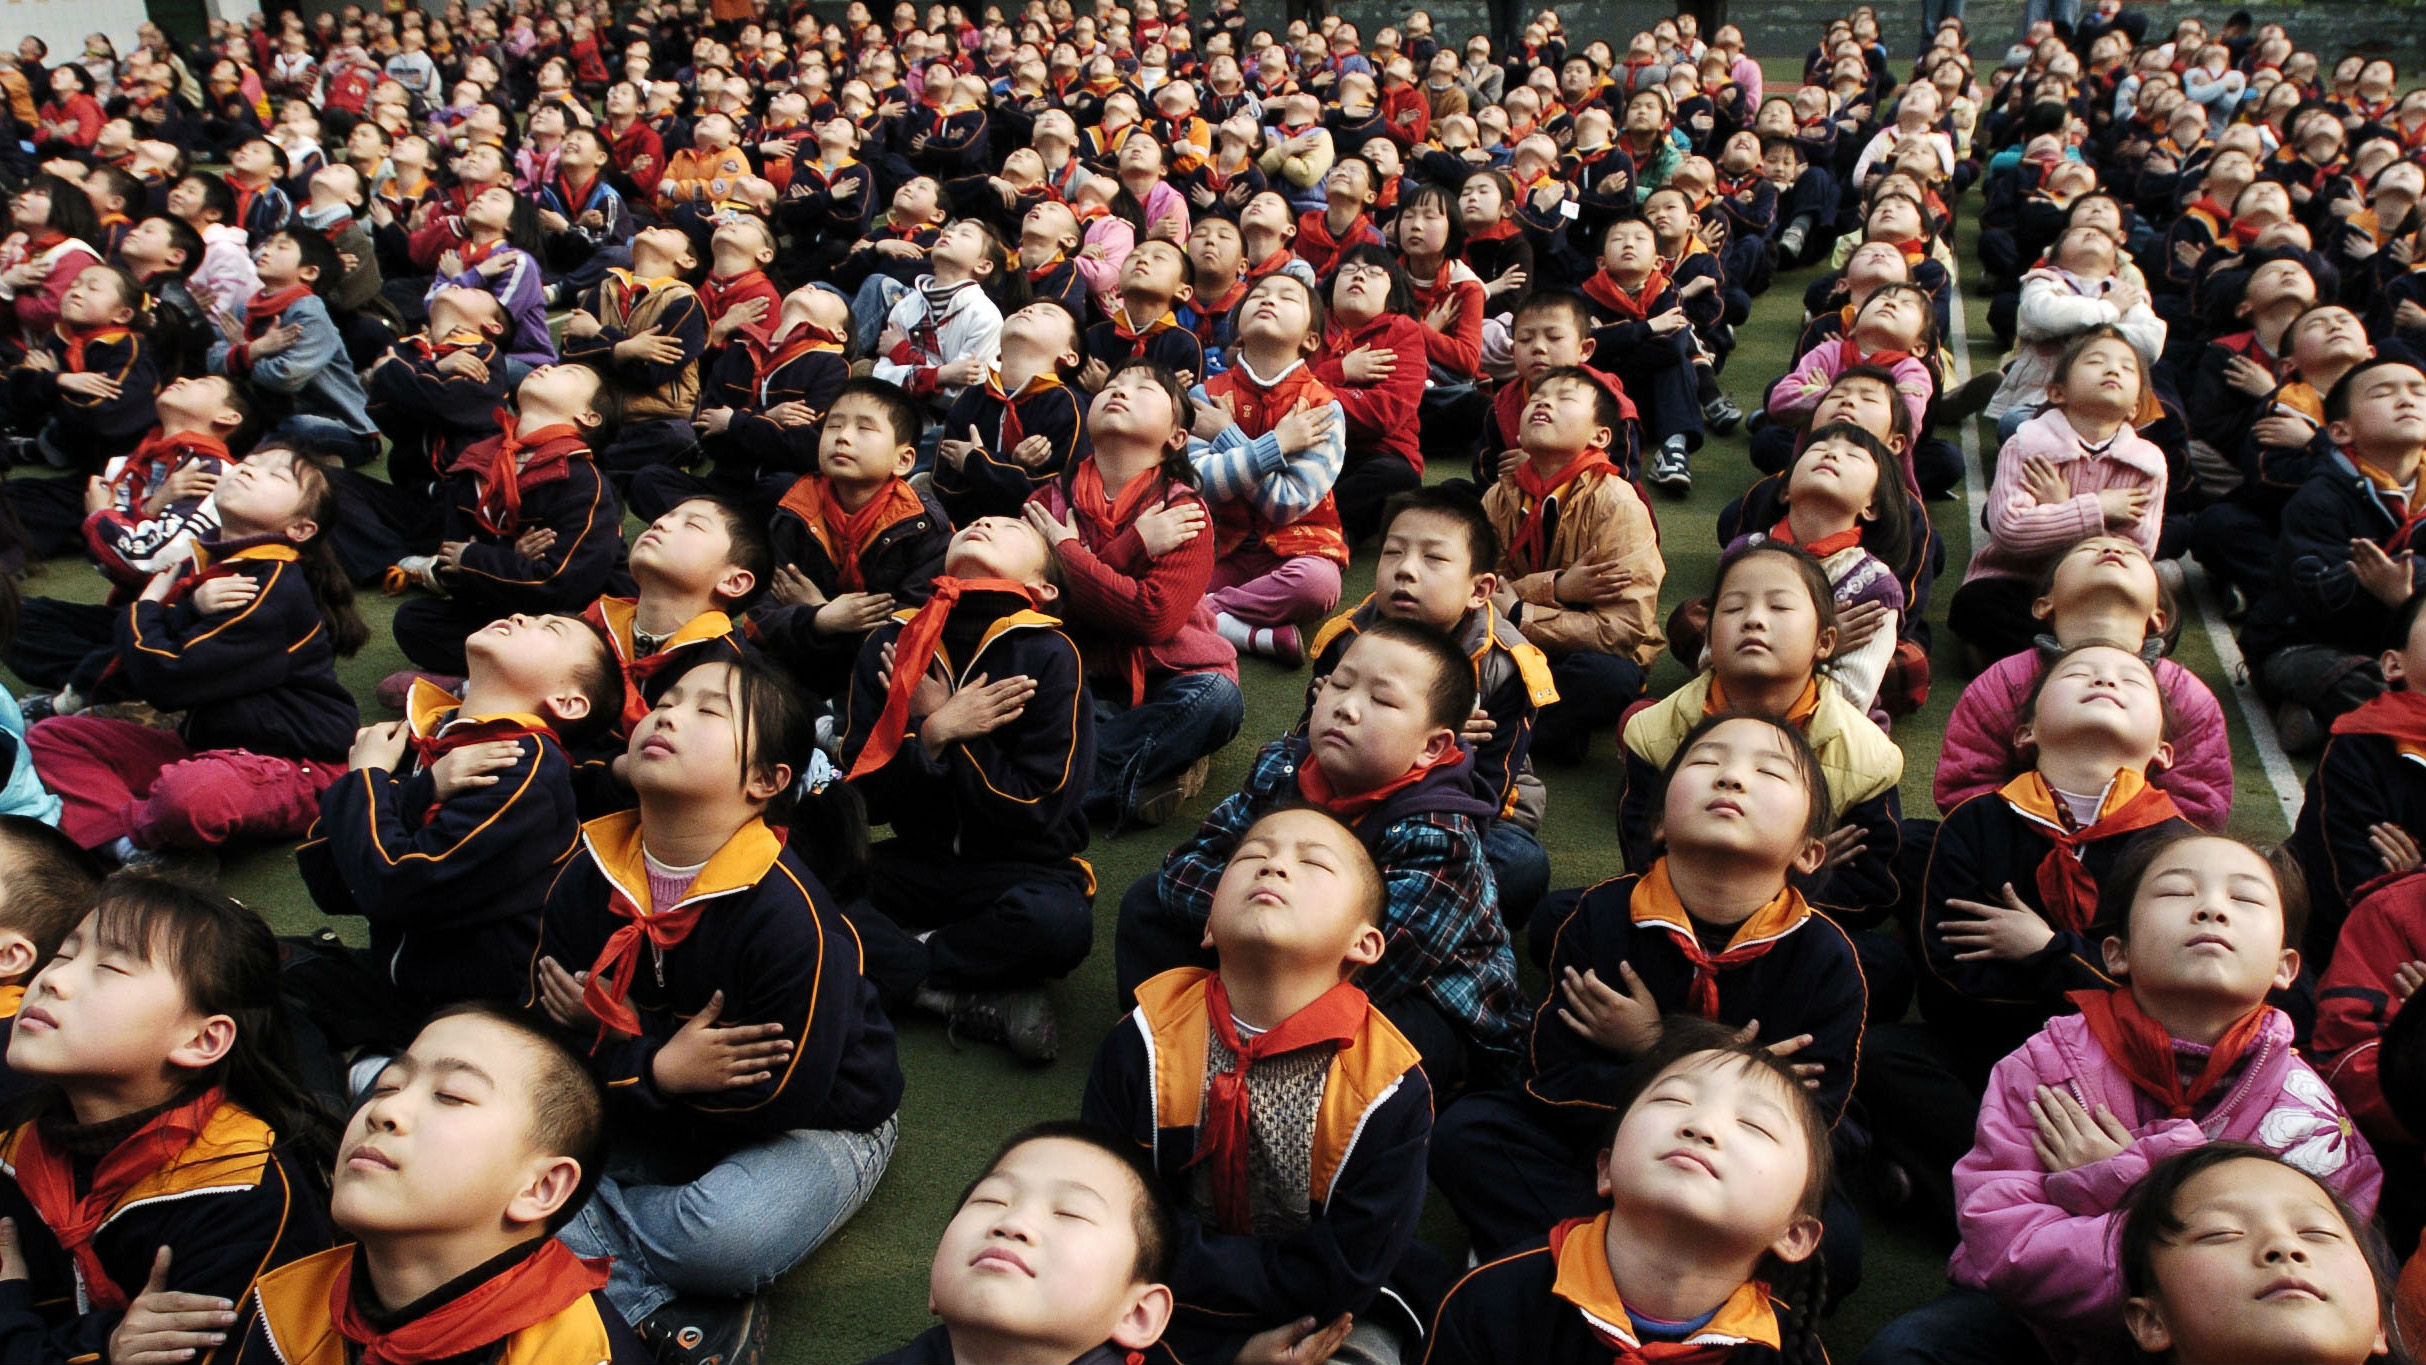 Pupils take a deep breath as they attend a health lecture on how to relax, at a yard of a primary school in Jinan, Shandong province March 31, 2008.